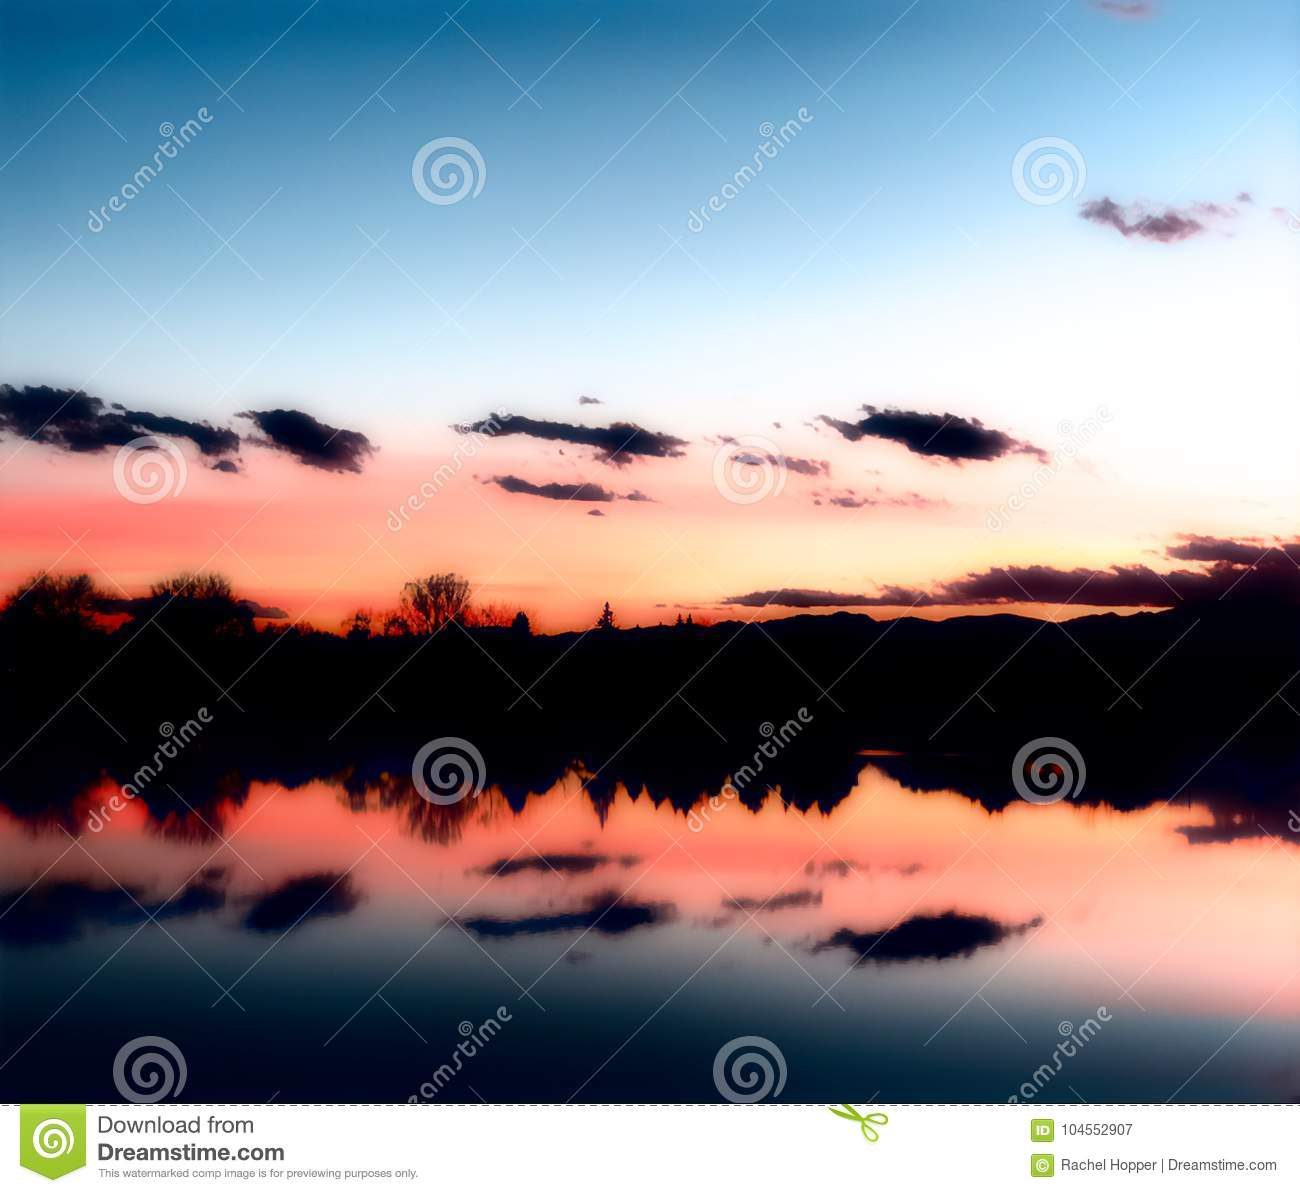 Sunset over a Lake with Reflections in the Water